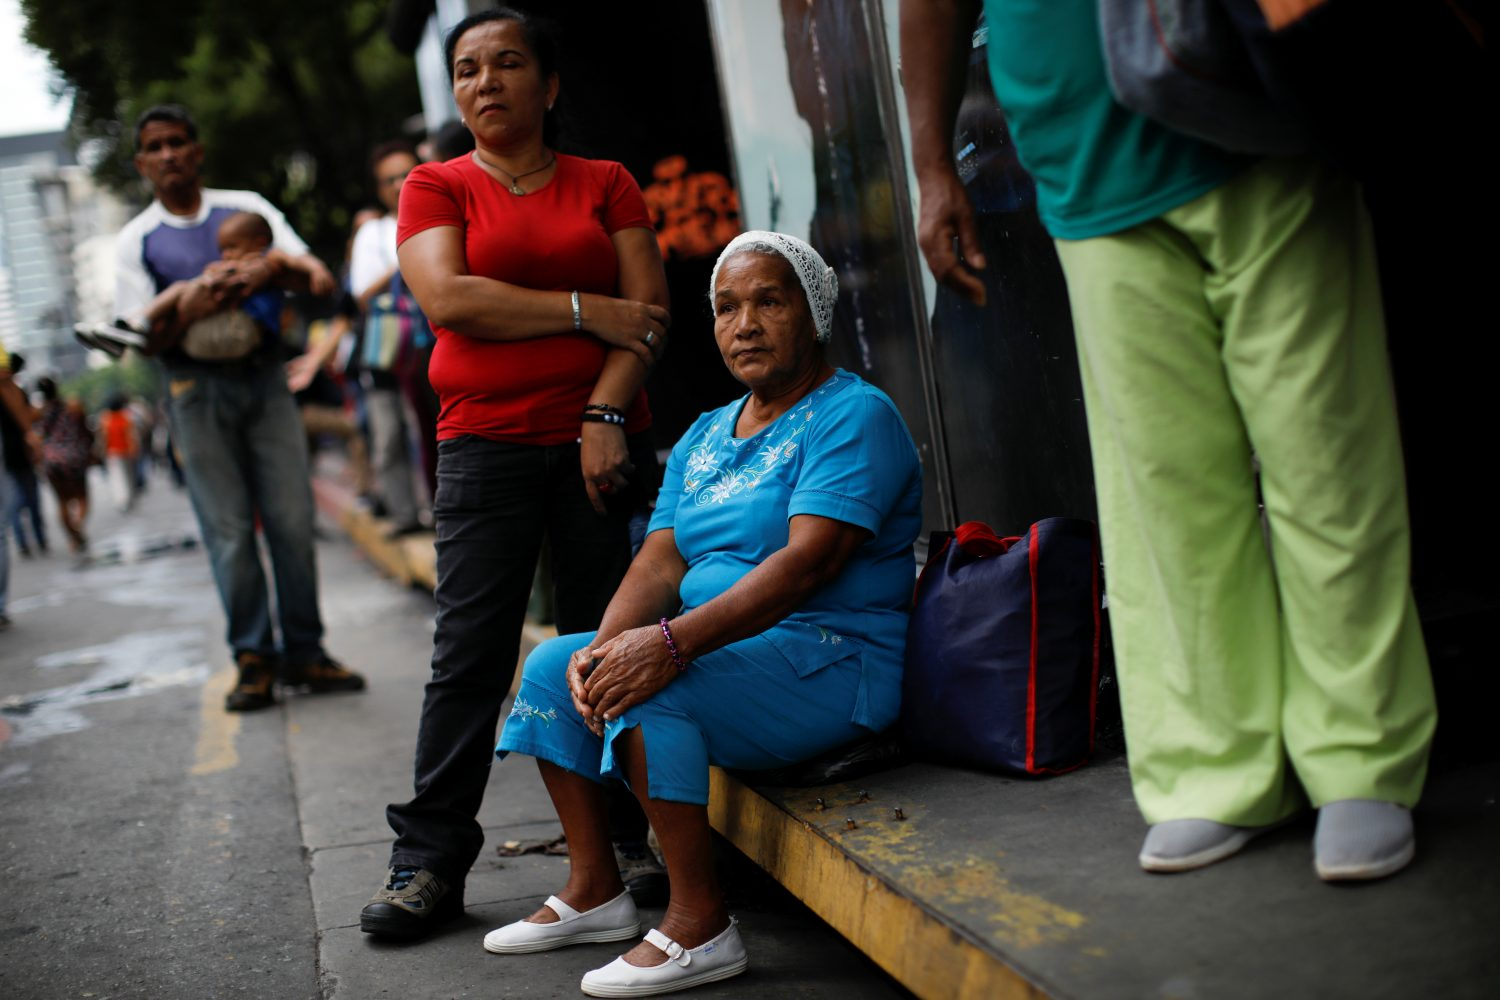 People wait for transportation outside a closed metro station during a blackout in Caracas, Venezuela July 22, 2019. REUTERS/Carlos Garcia Rawlins